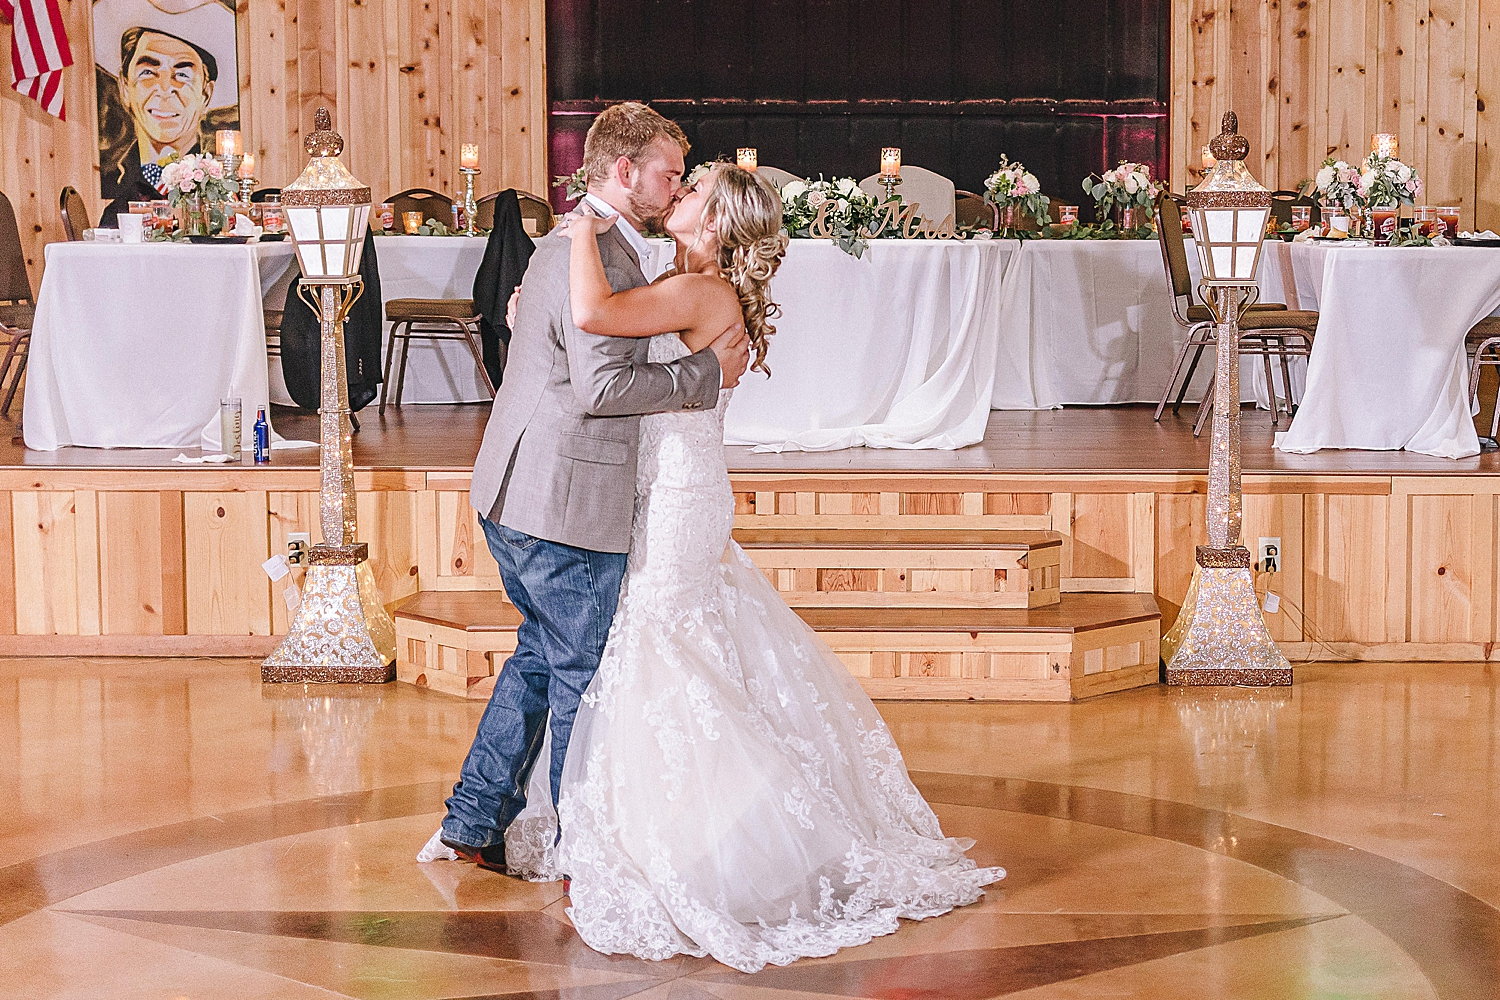 Rackler-Ranch-LaVernia-Texas-Wedding-Carly-Barton-Photography_0138.jpg